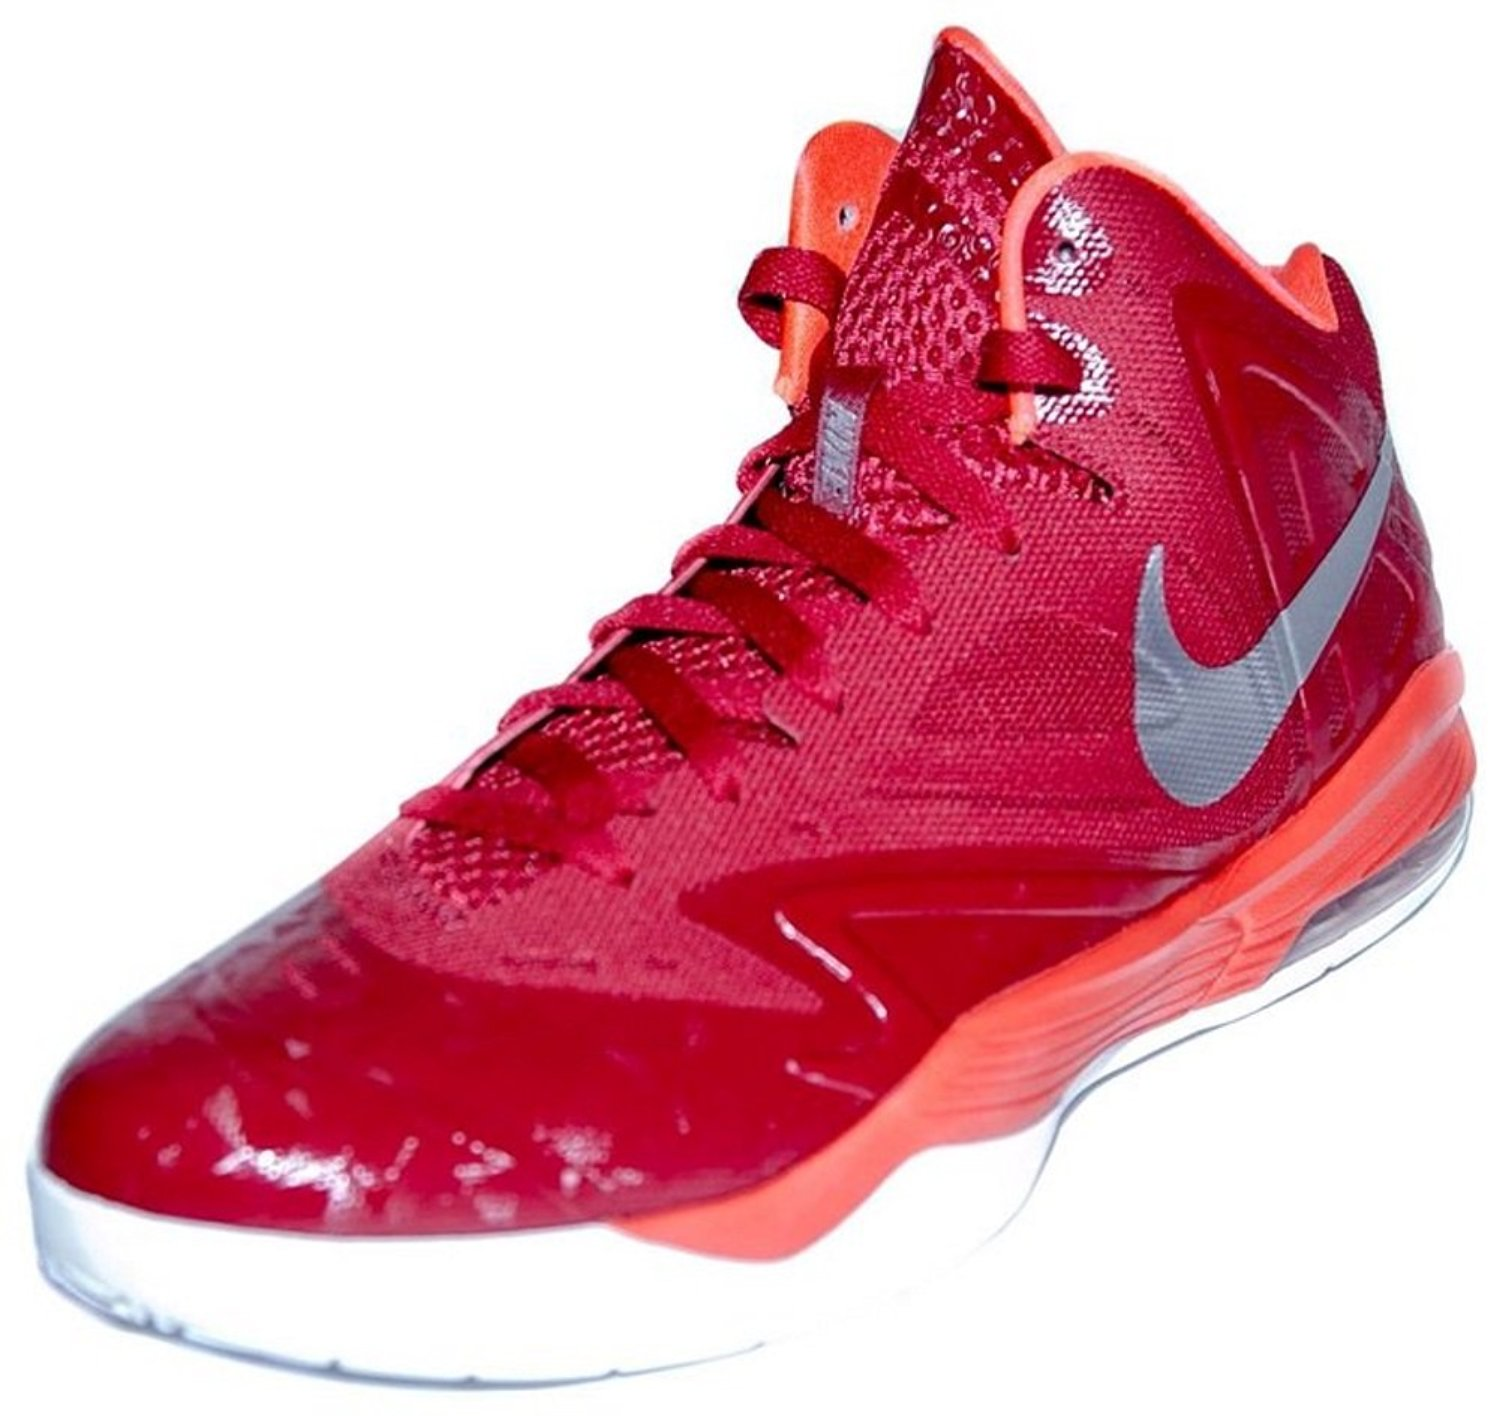 newest 8117e 77b54 Get Quotations · Nike Mens Air Max Premiere TB Basketball Shoes